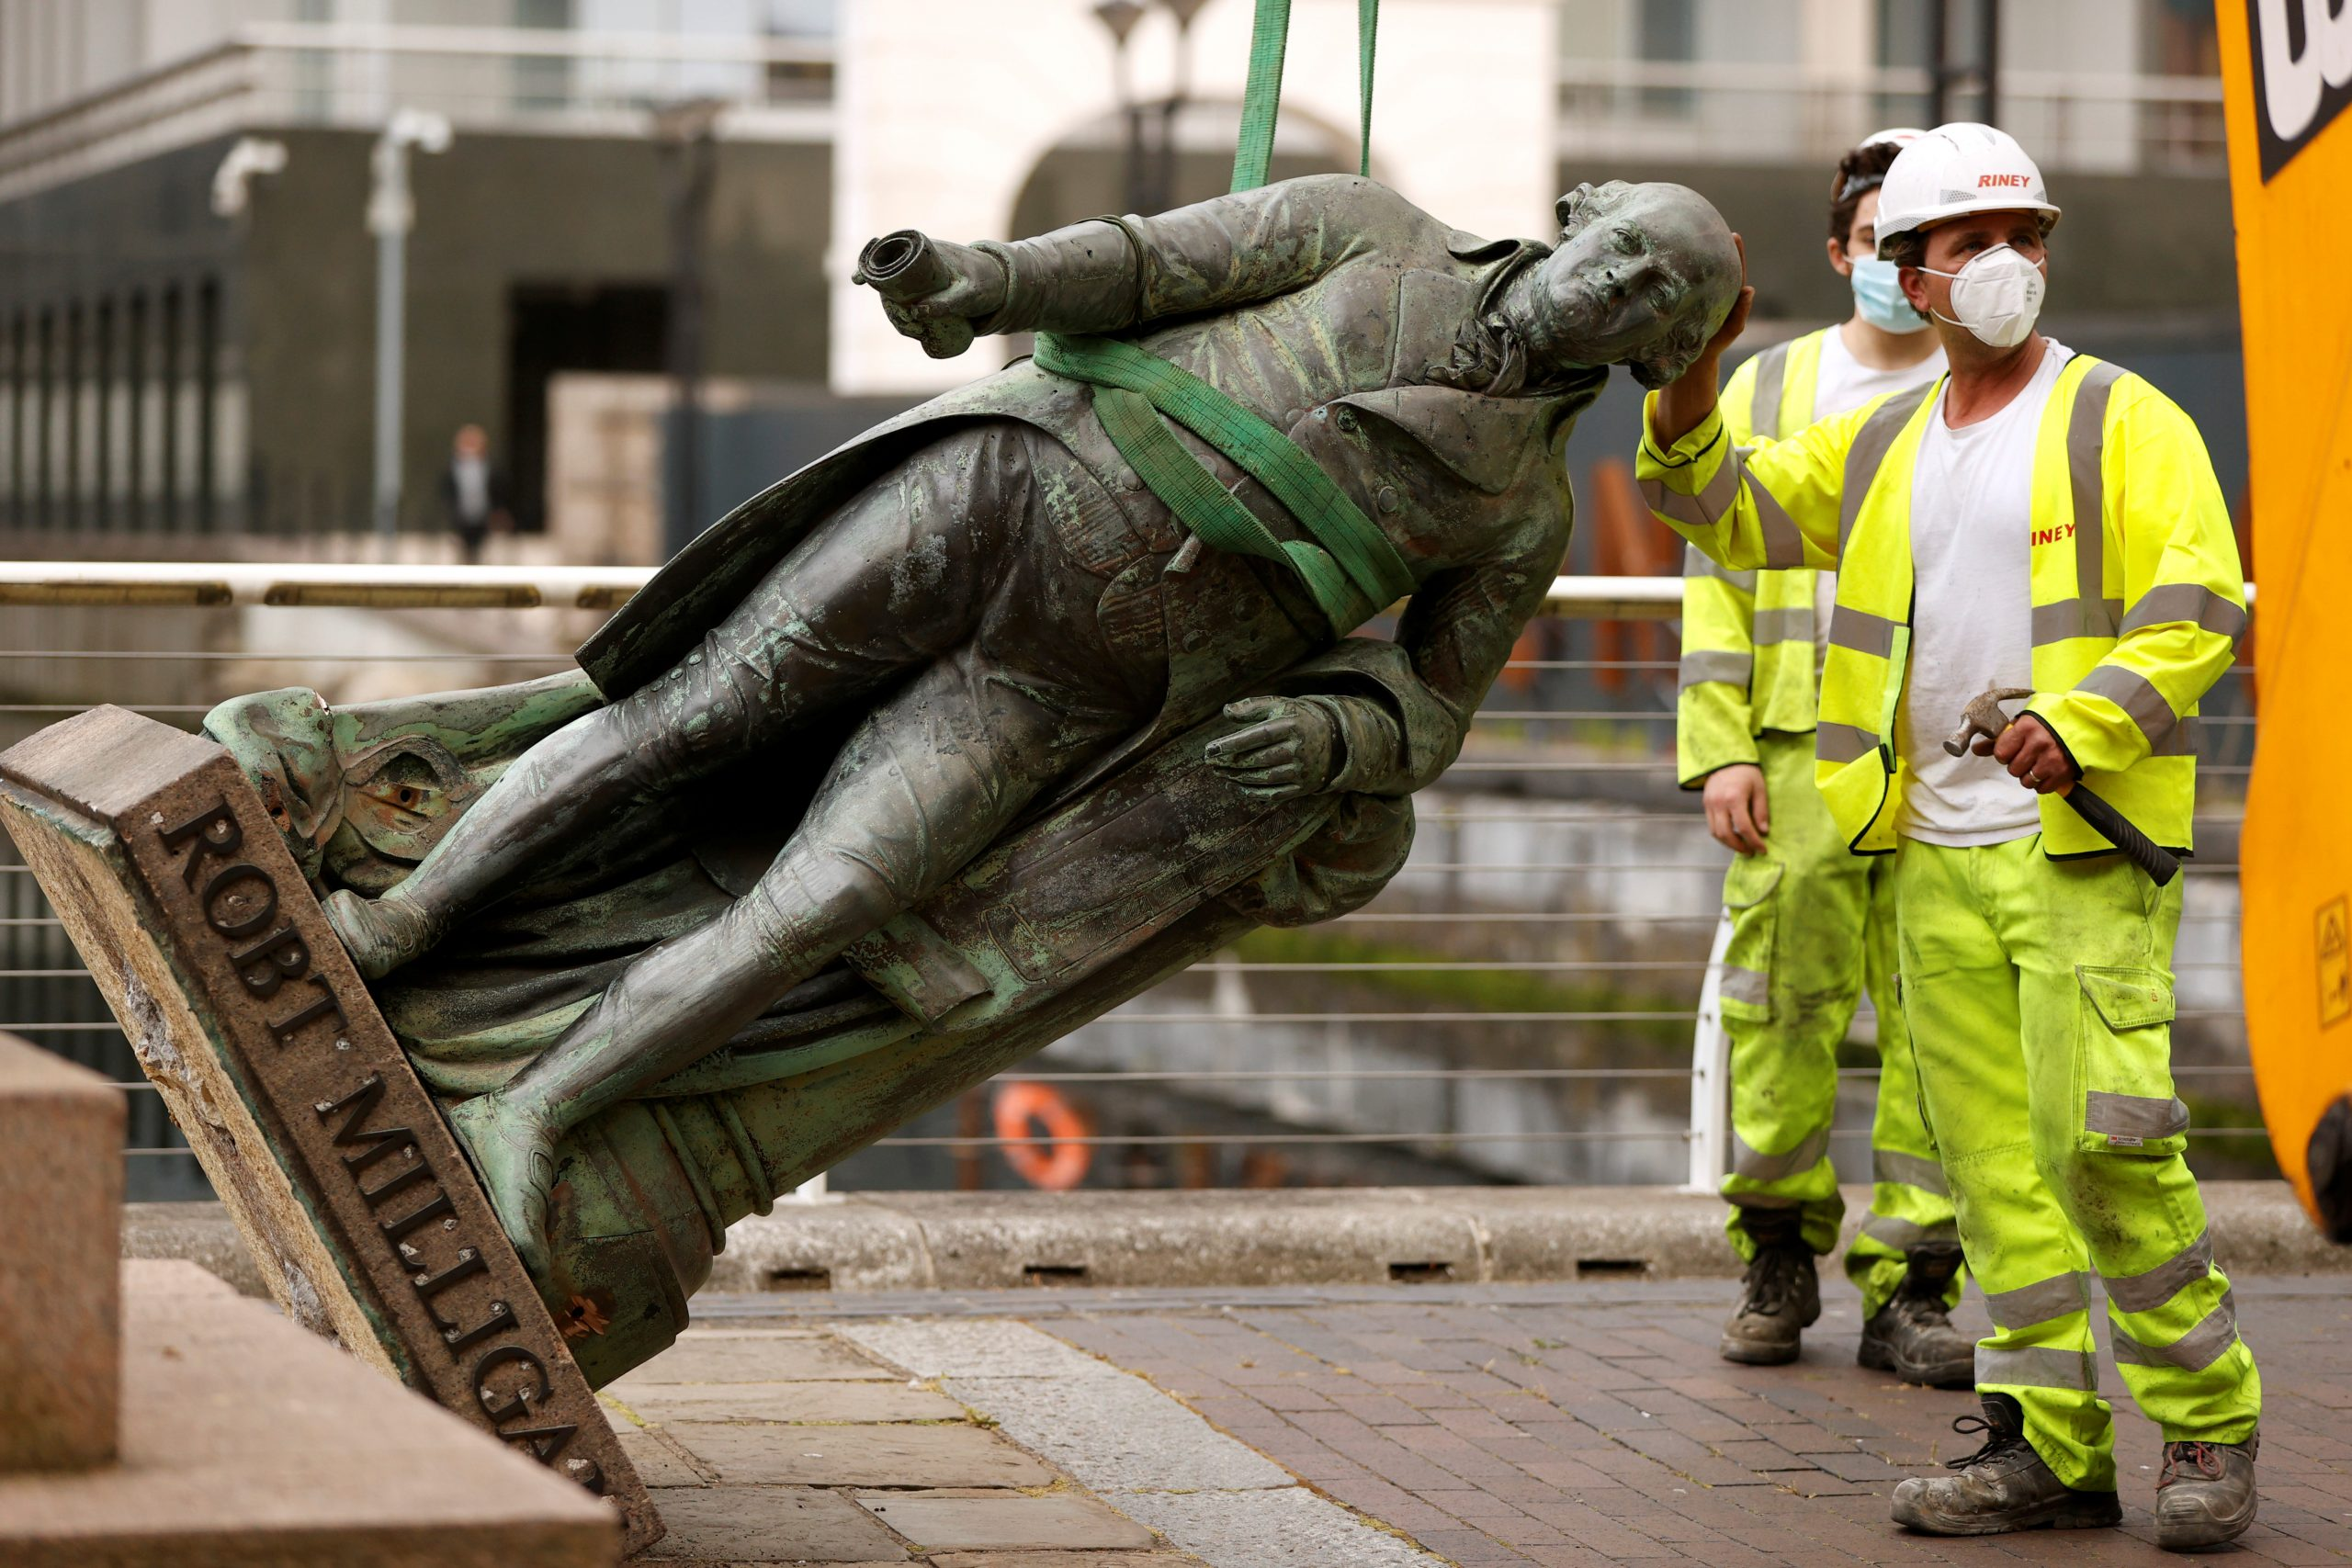 A statue of Robert Milligan is pictured being removed by workers outside the Museum of London Docklands near Canary Wharf, London, on June 9, 2020. (REUTERS/John Sibley)